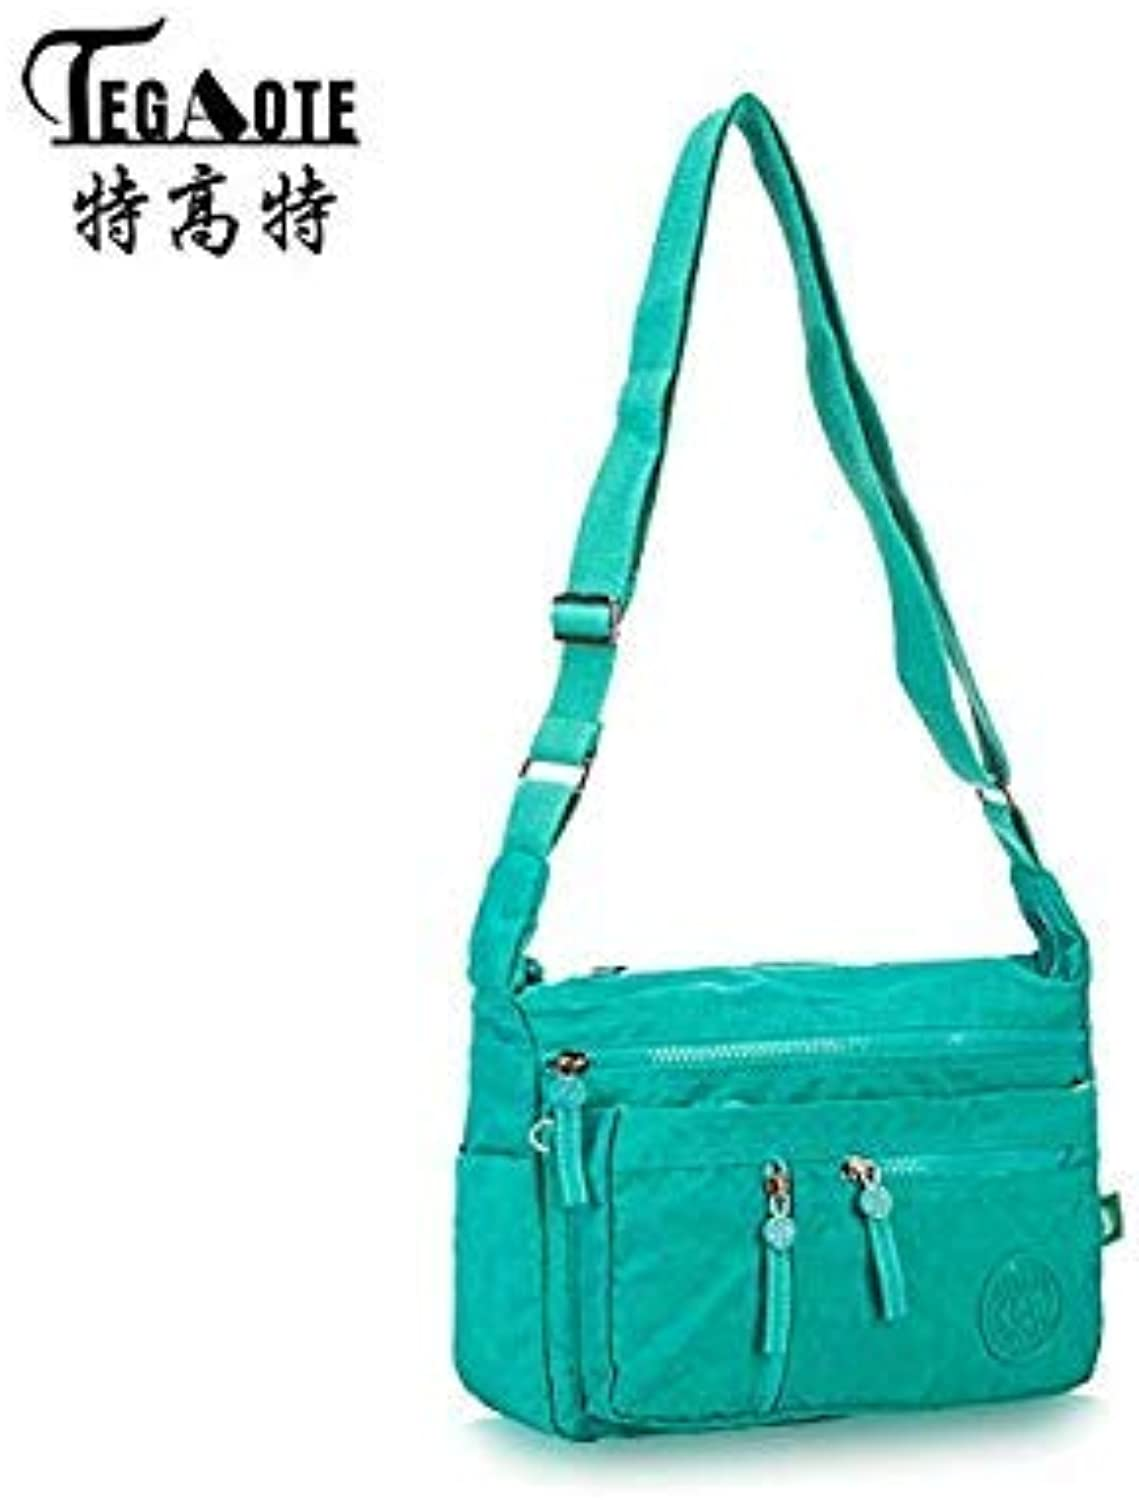 Bloomerang TEGAOTE Luxury Women Messenger Bag Nylon Shoulder Bag Ladies Bolsa Feminina Waterproof Travel Bag Women's Crossbody Bag color Green Size 24CMX10CMX29CM 932